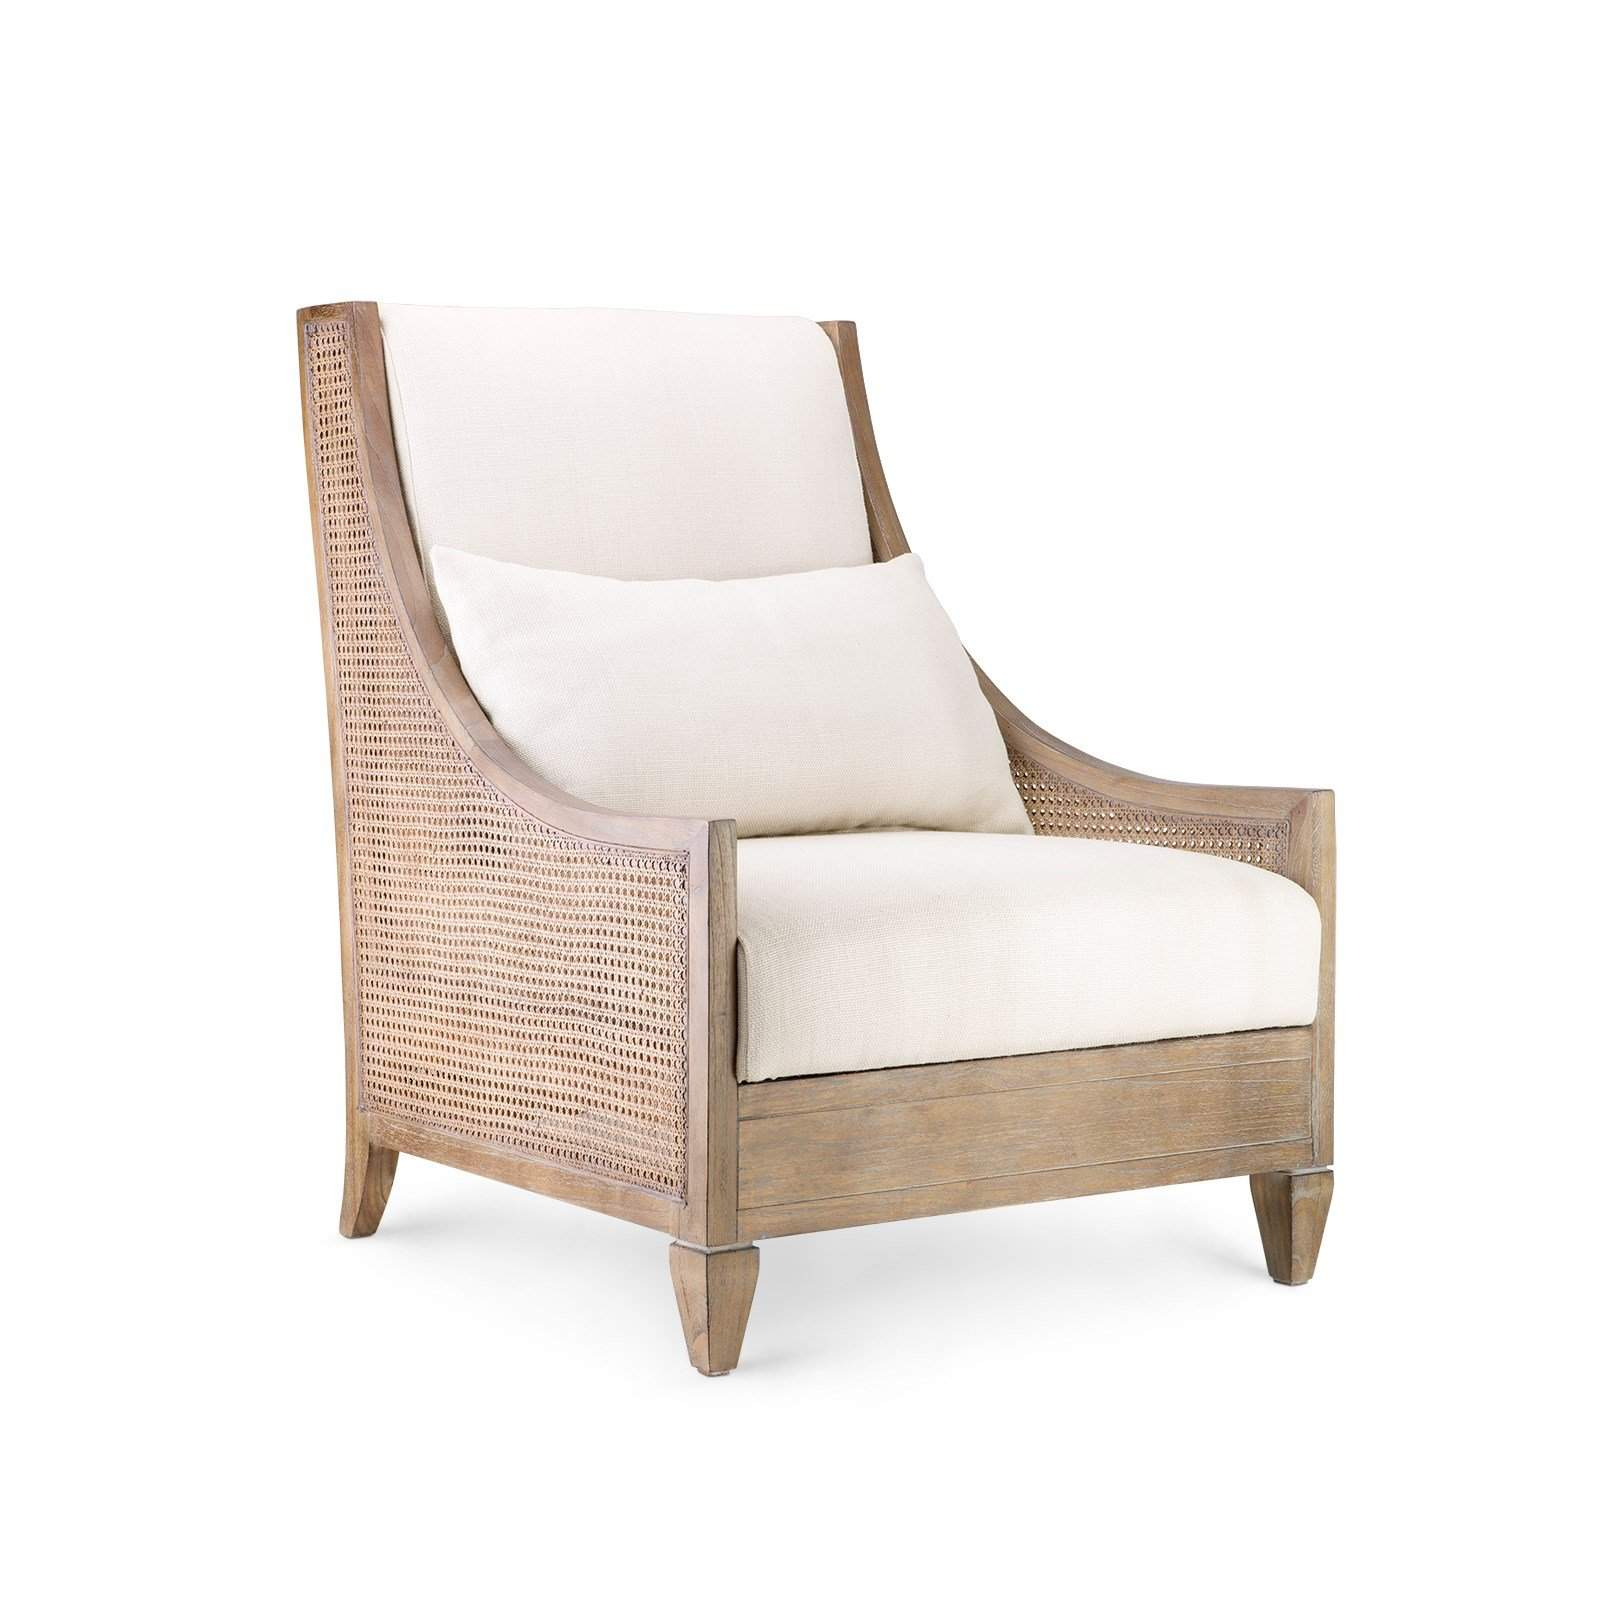 Bungalow 5 - Raleigh Club Chair